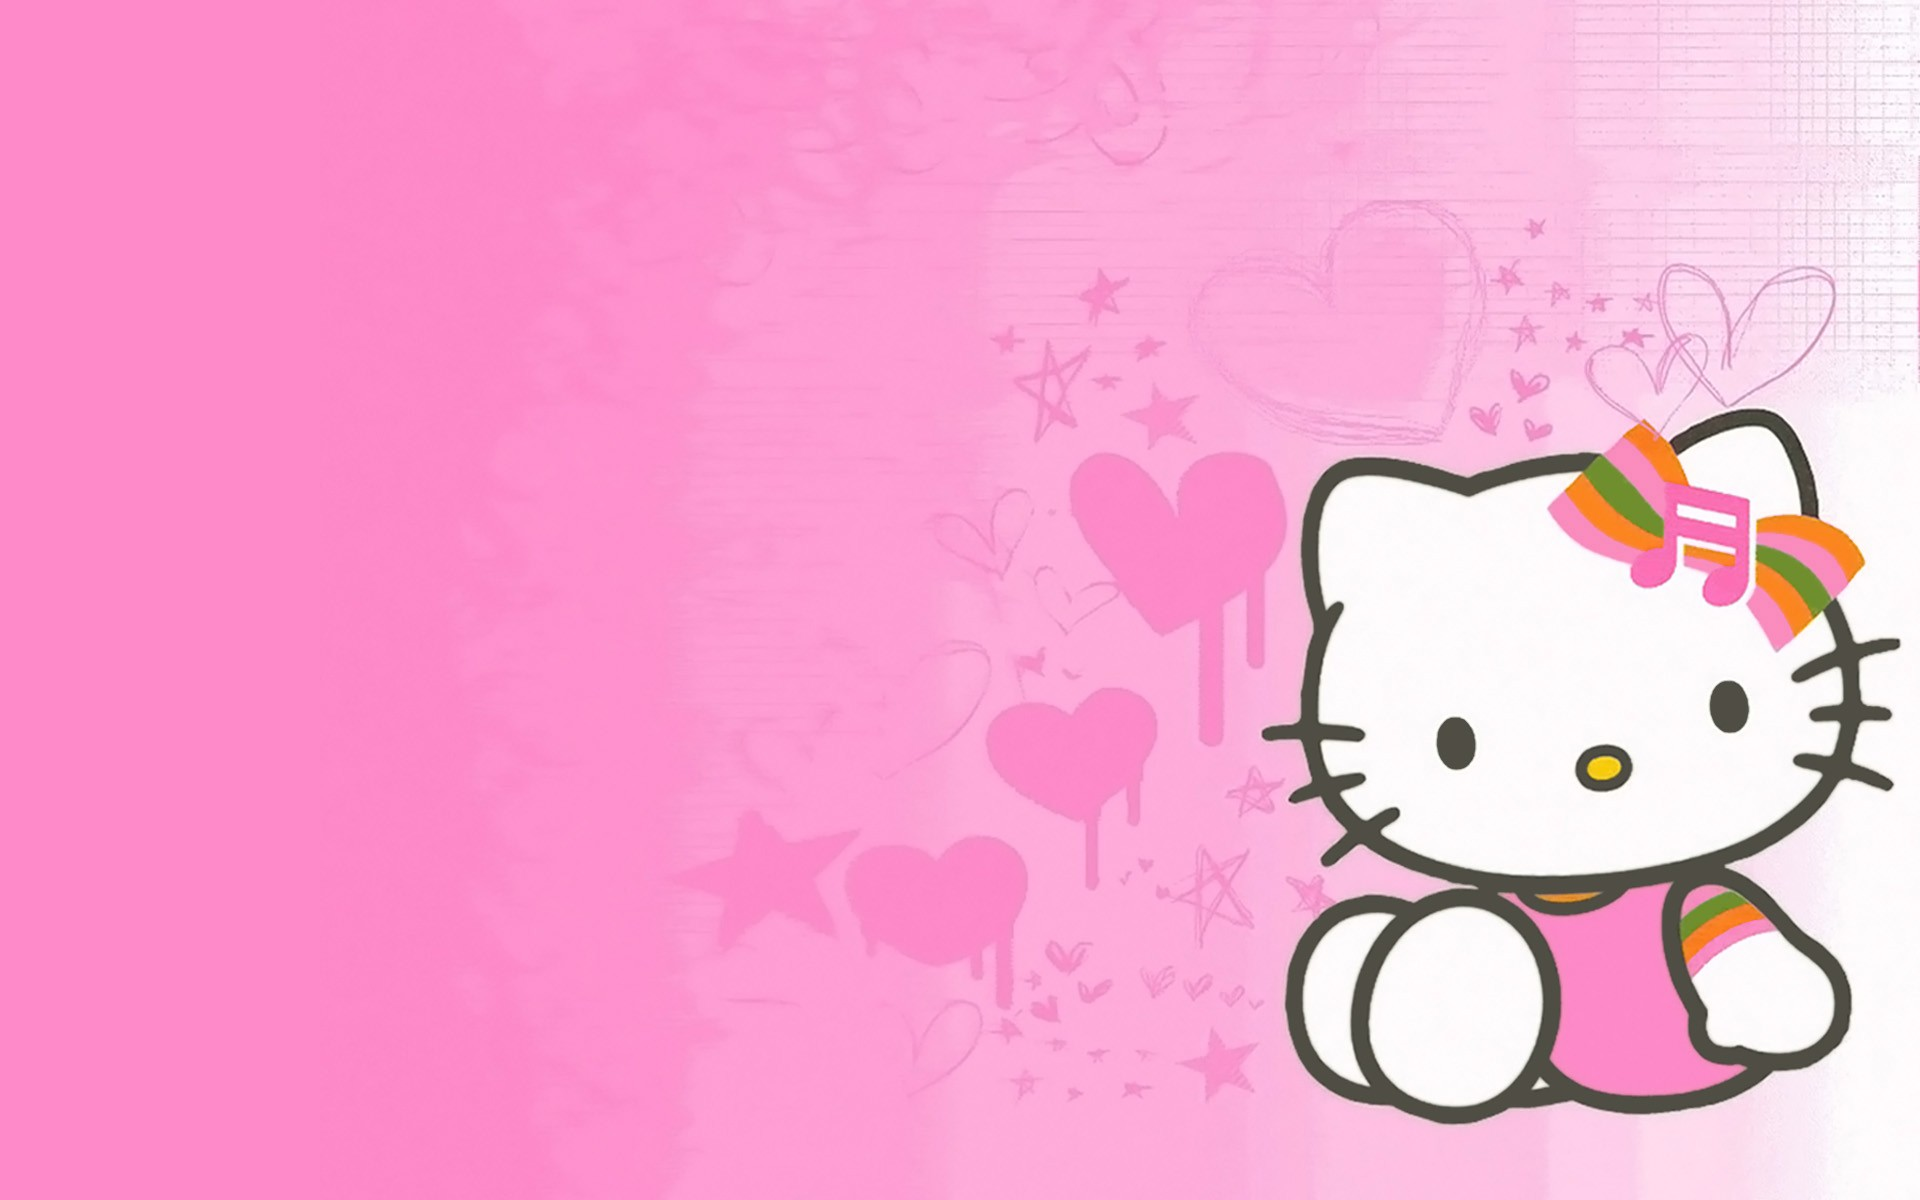 Wallpaper Cute ·① Download Free Awesome HD Backgrounds For